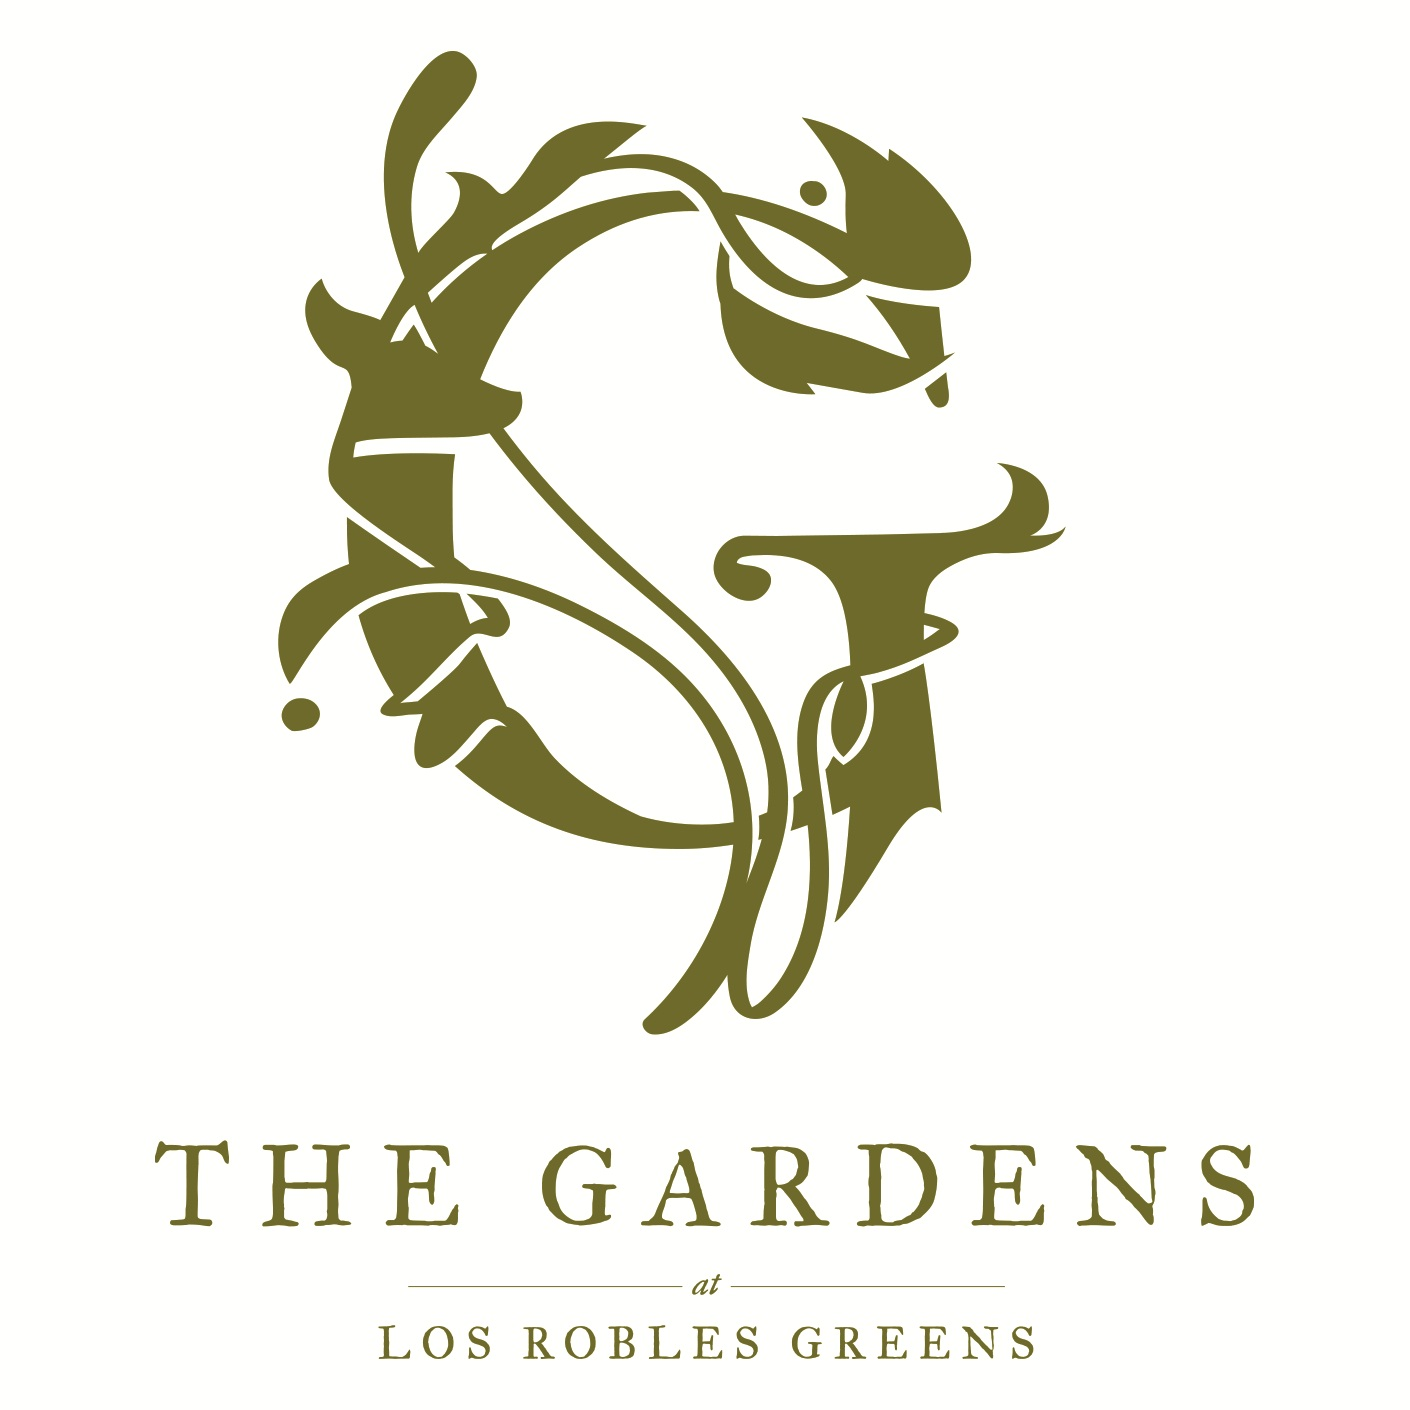 the gardens and los robles greens.jpg